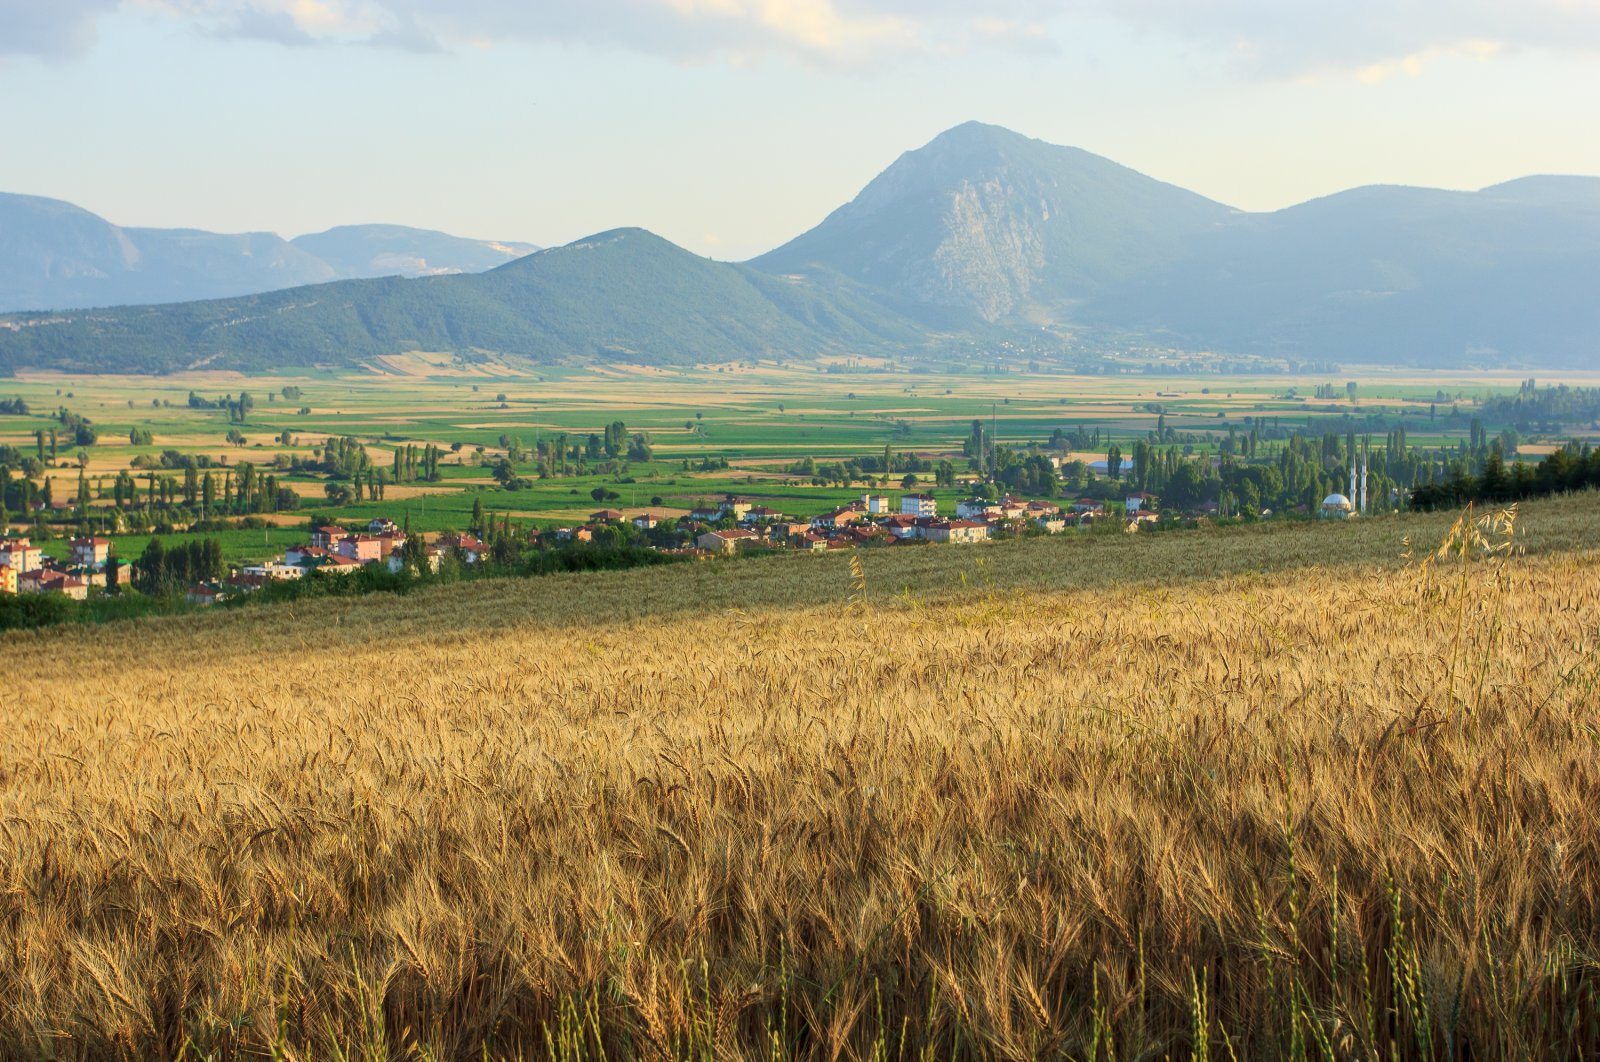 With high plateaus in the backdrop, the countryside near the Gölpazarı district in northwestern Turkey's Bilecik province offers a peaceful respite from city life. (iStock Photo)